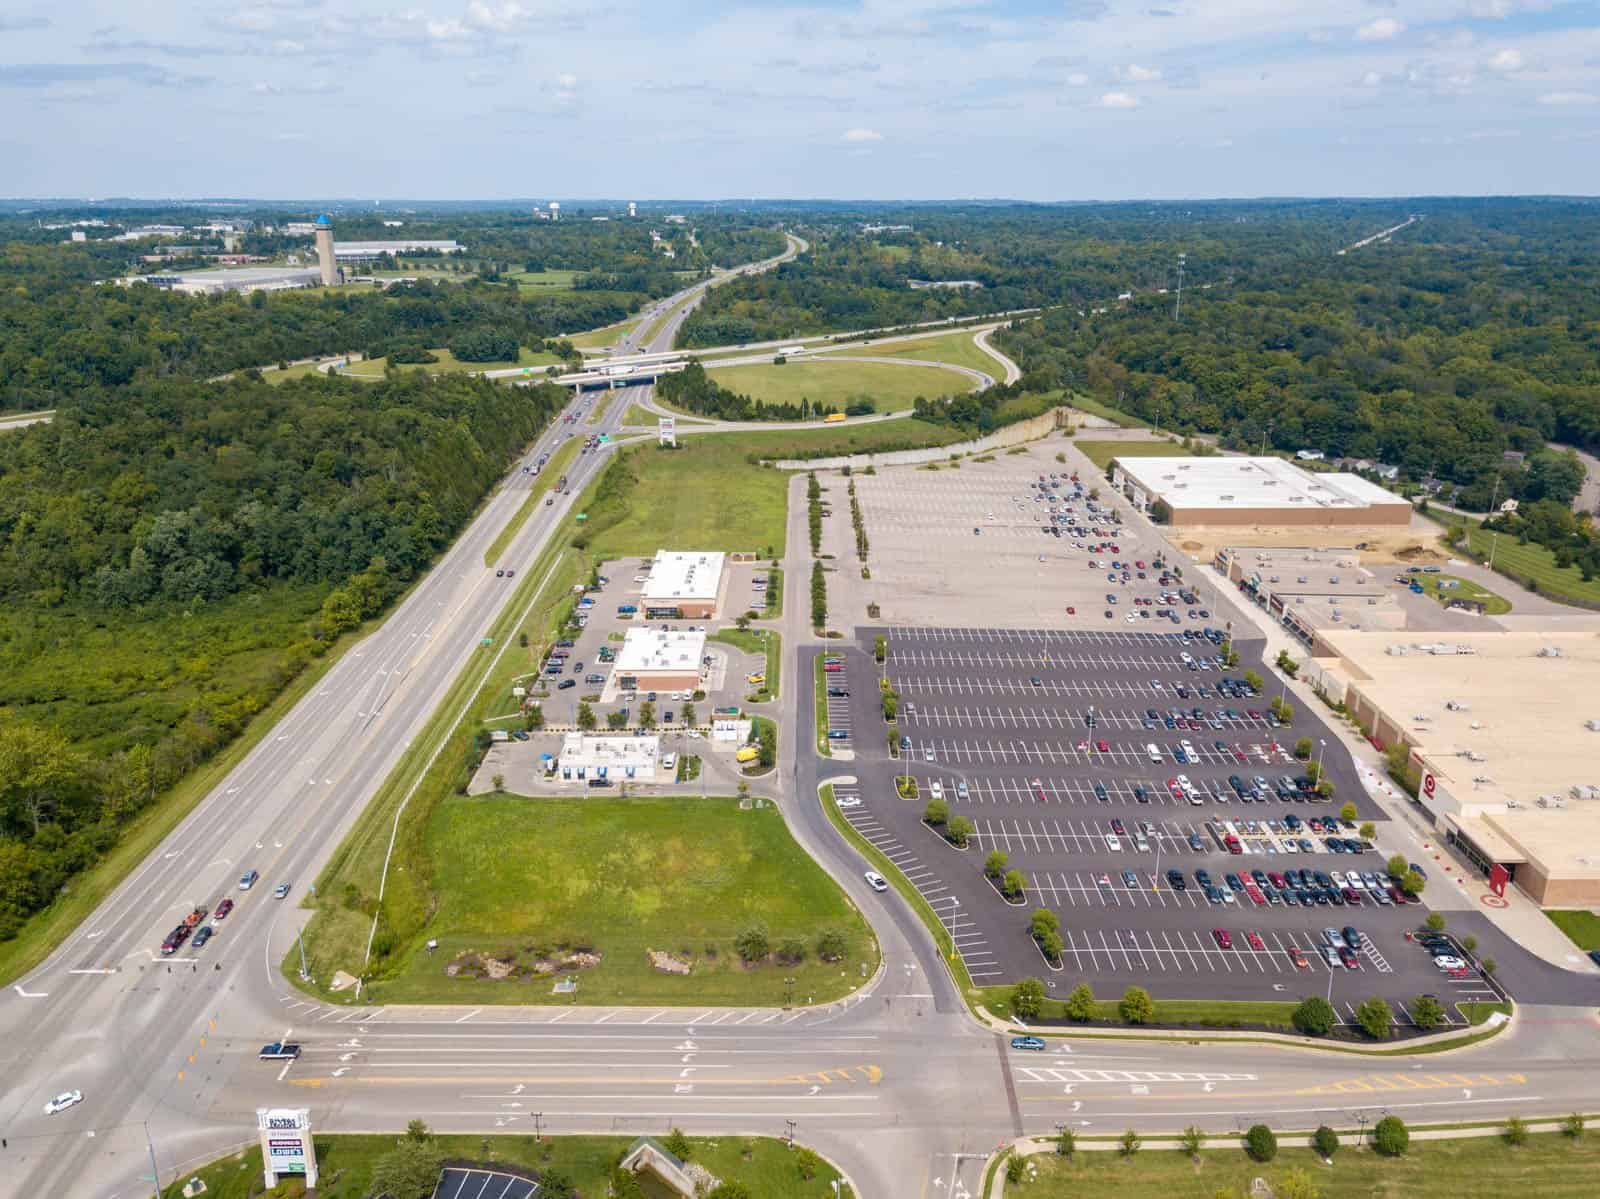 aerial drone photo of commercial strip mall in South Lebanon, Ohio